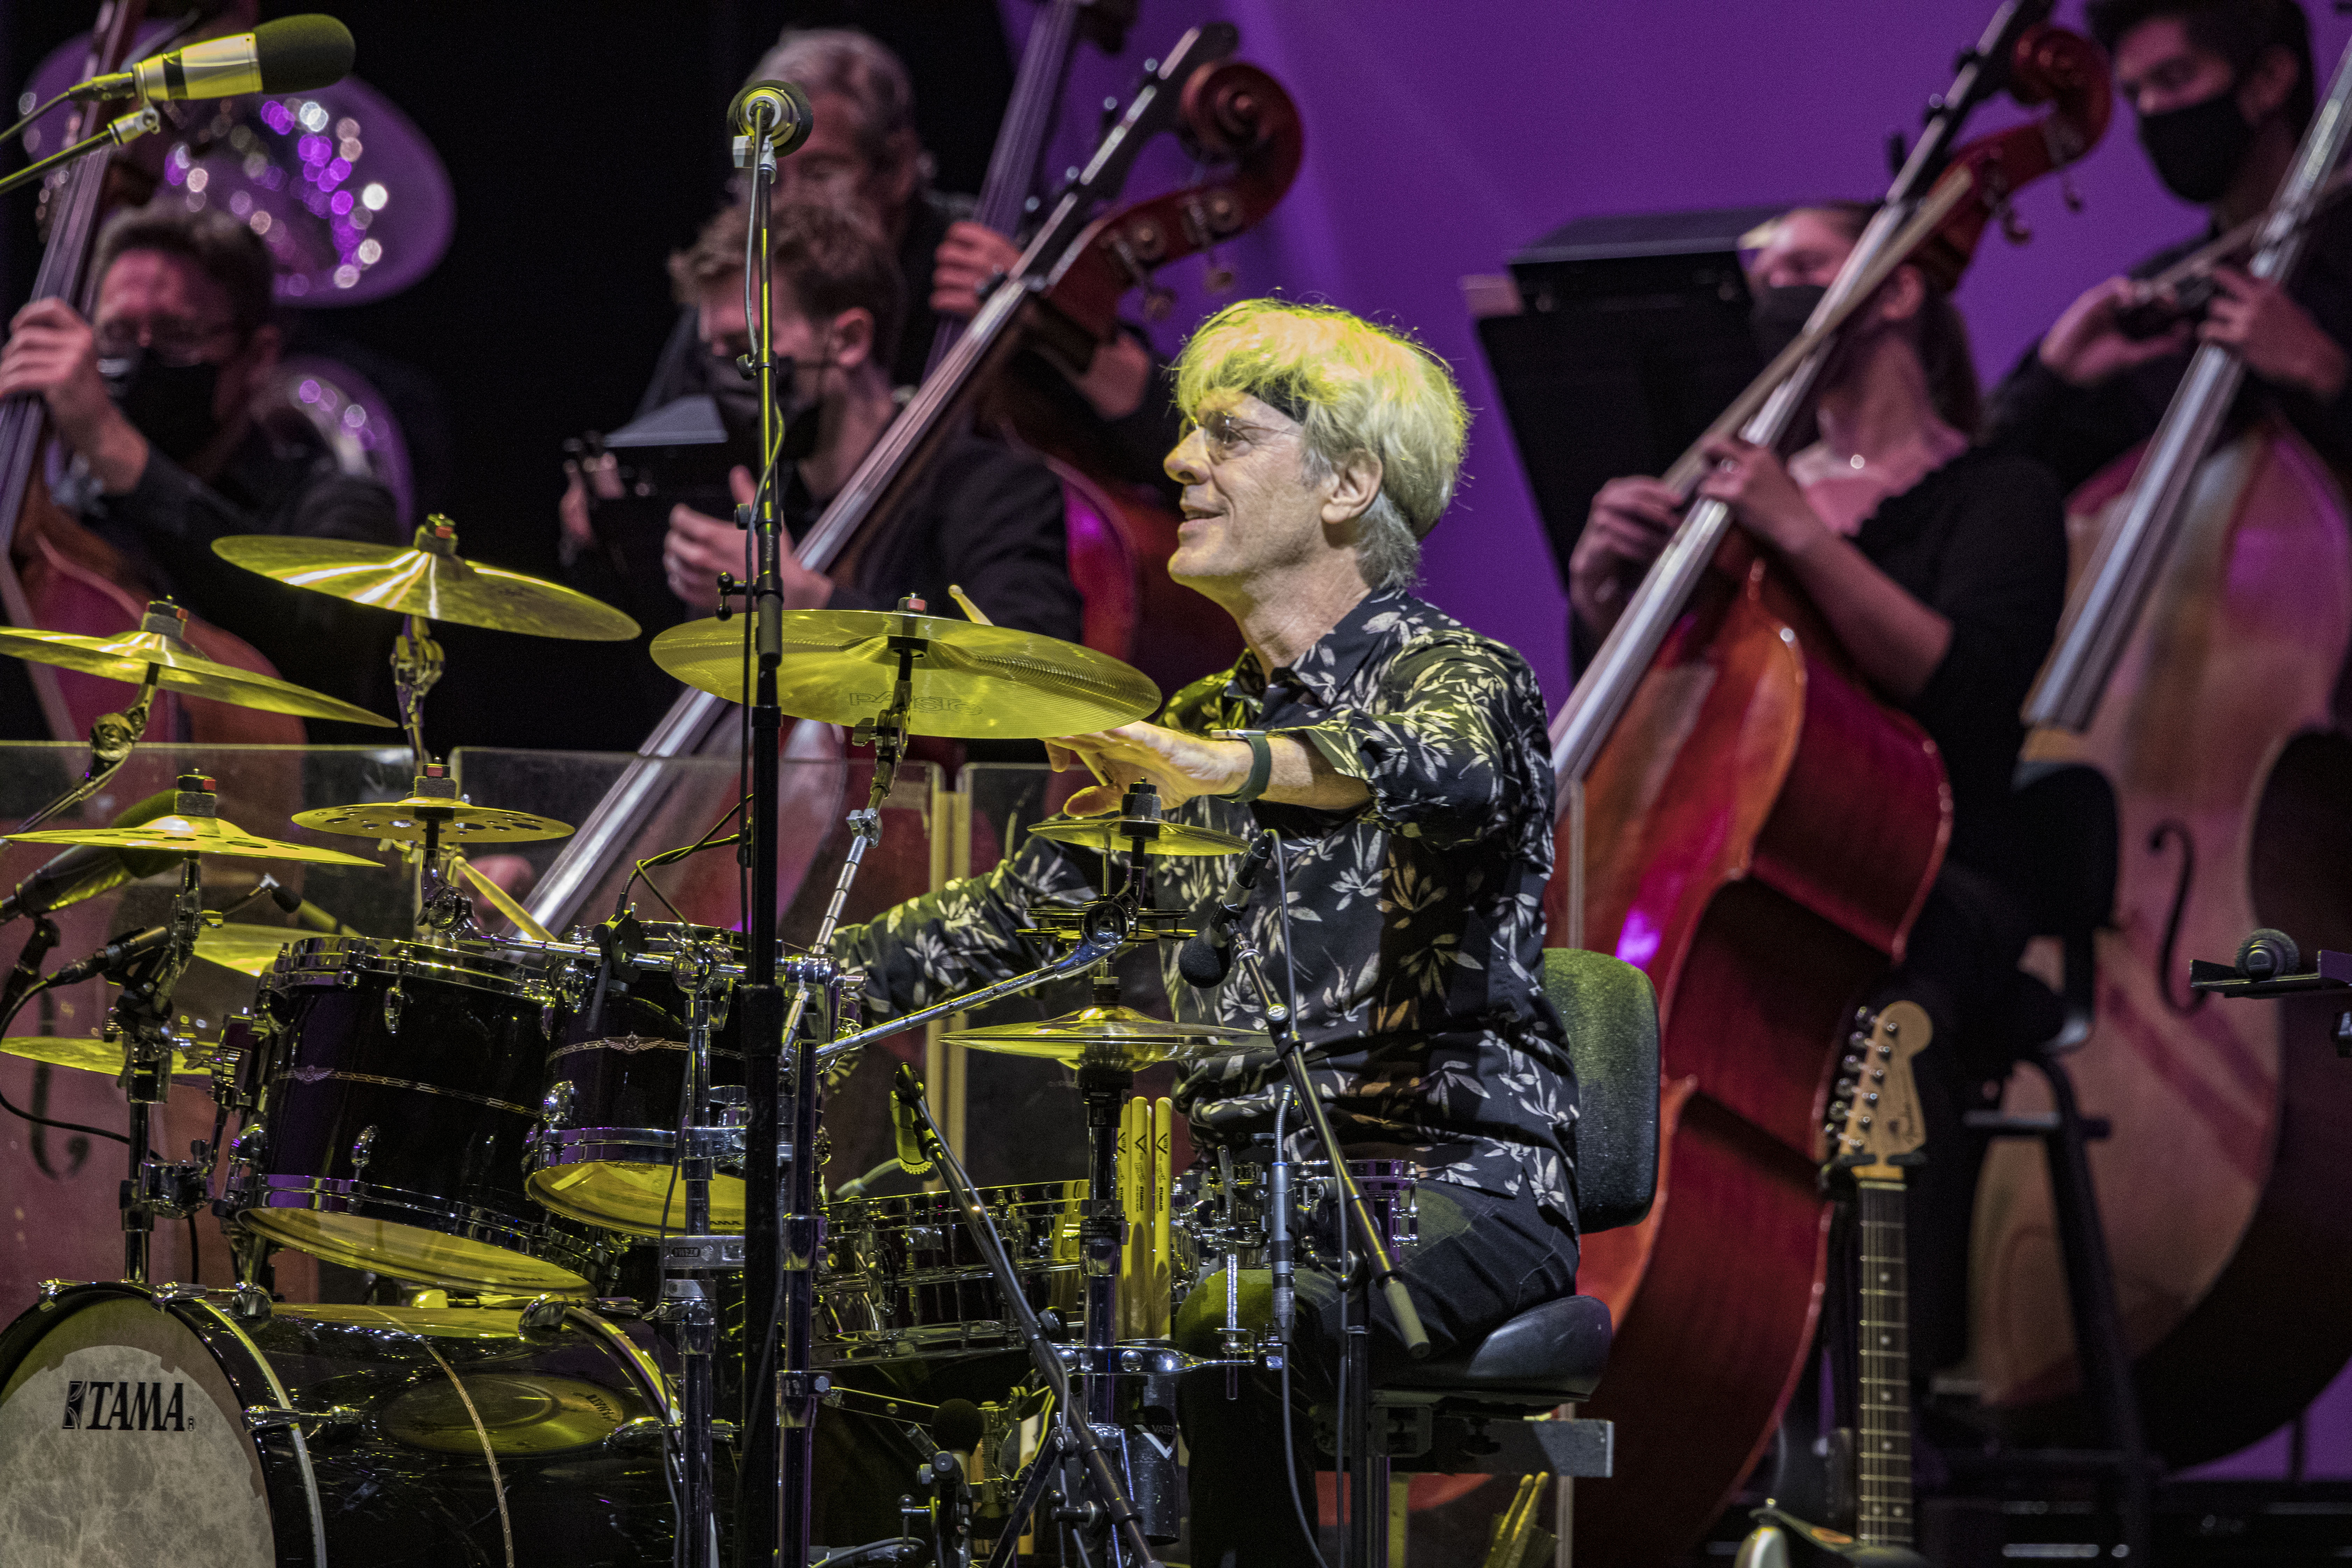 Milwaukee Symphony Orchestra to Perform with Stewart Copeland of the Police on December 2